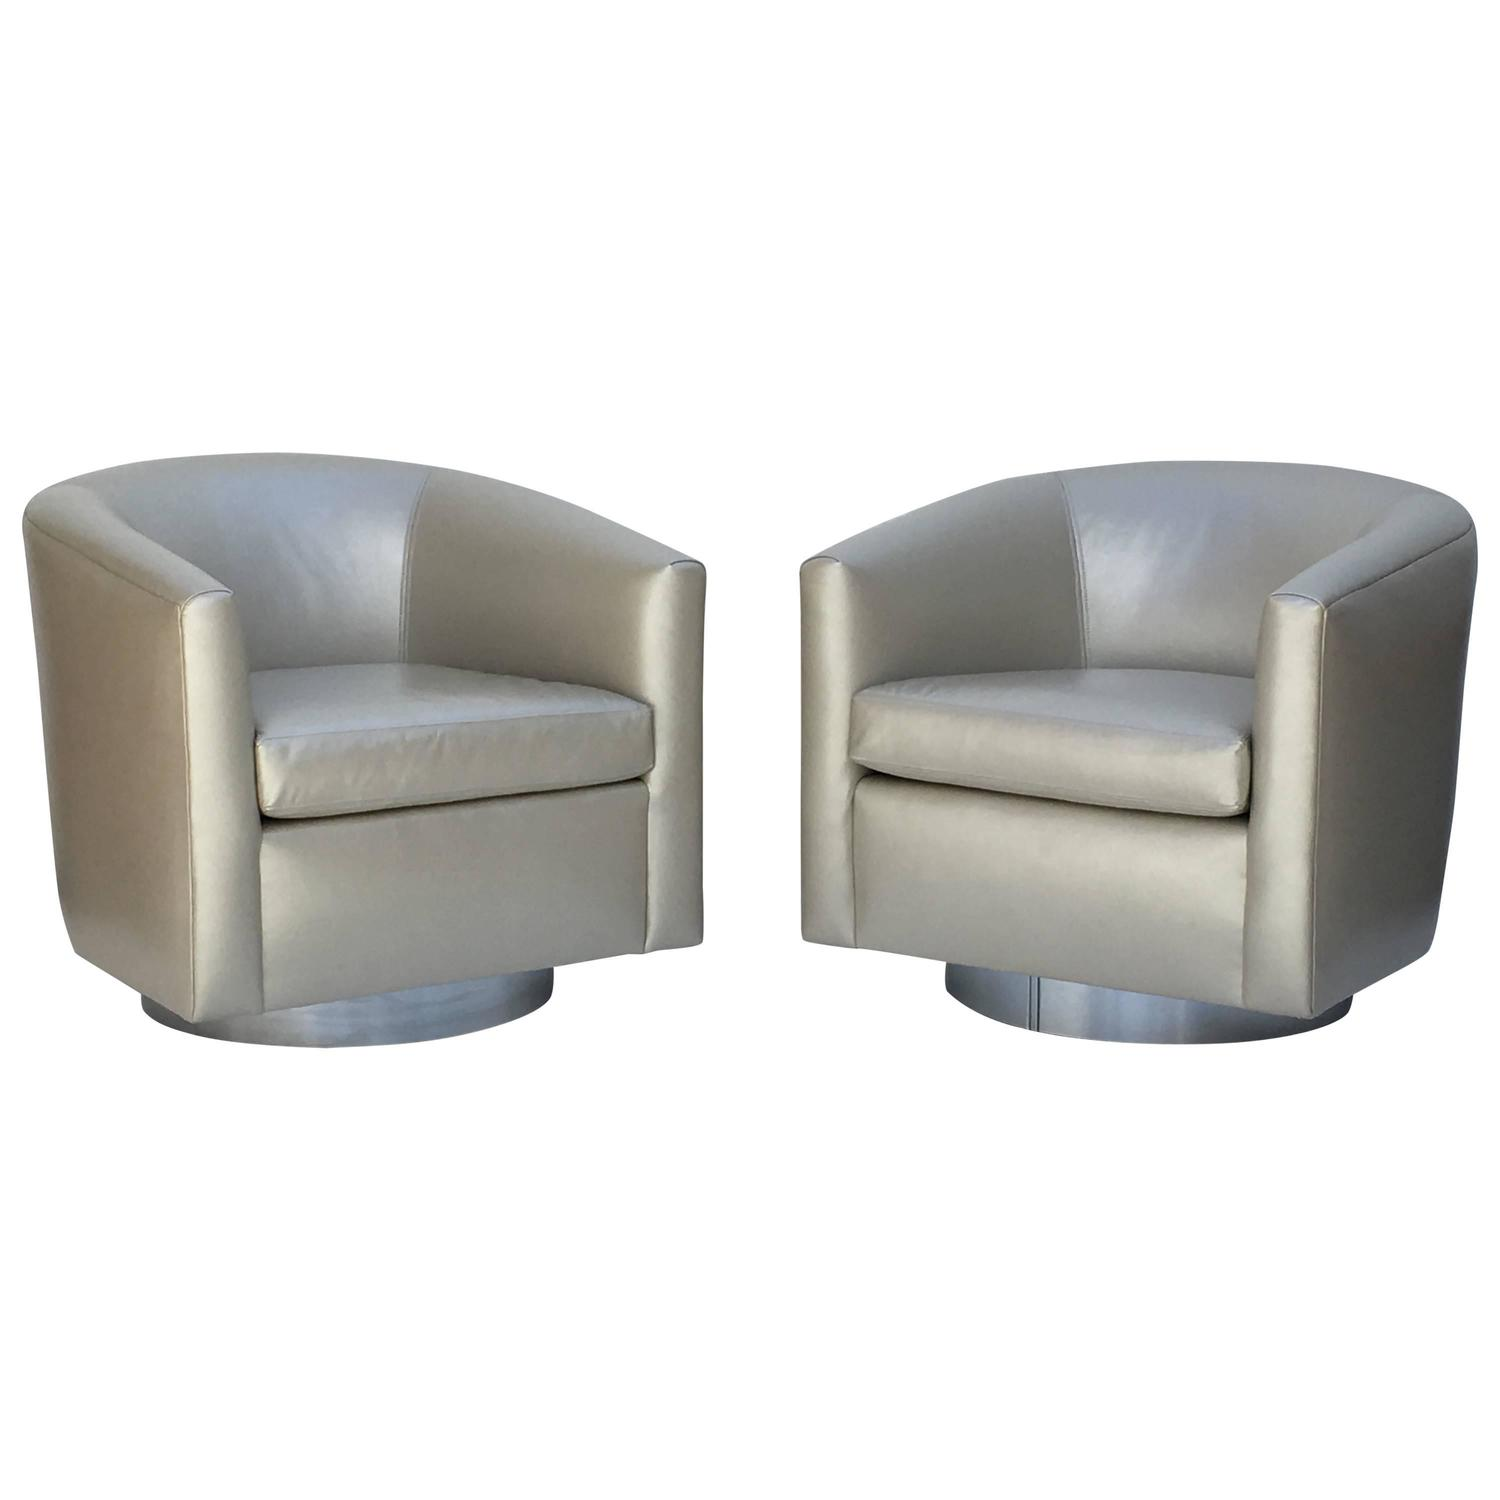 Chrome and Leather Swivel Chairs by Martin Brattrud for